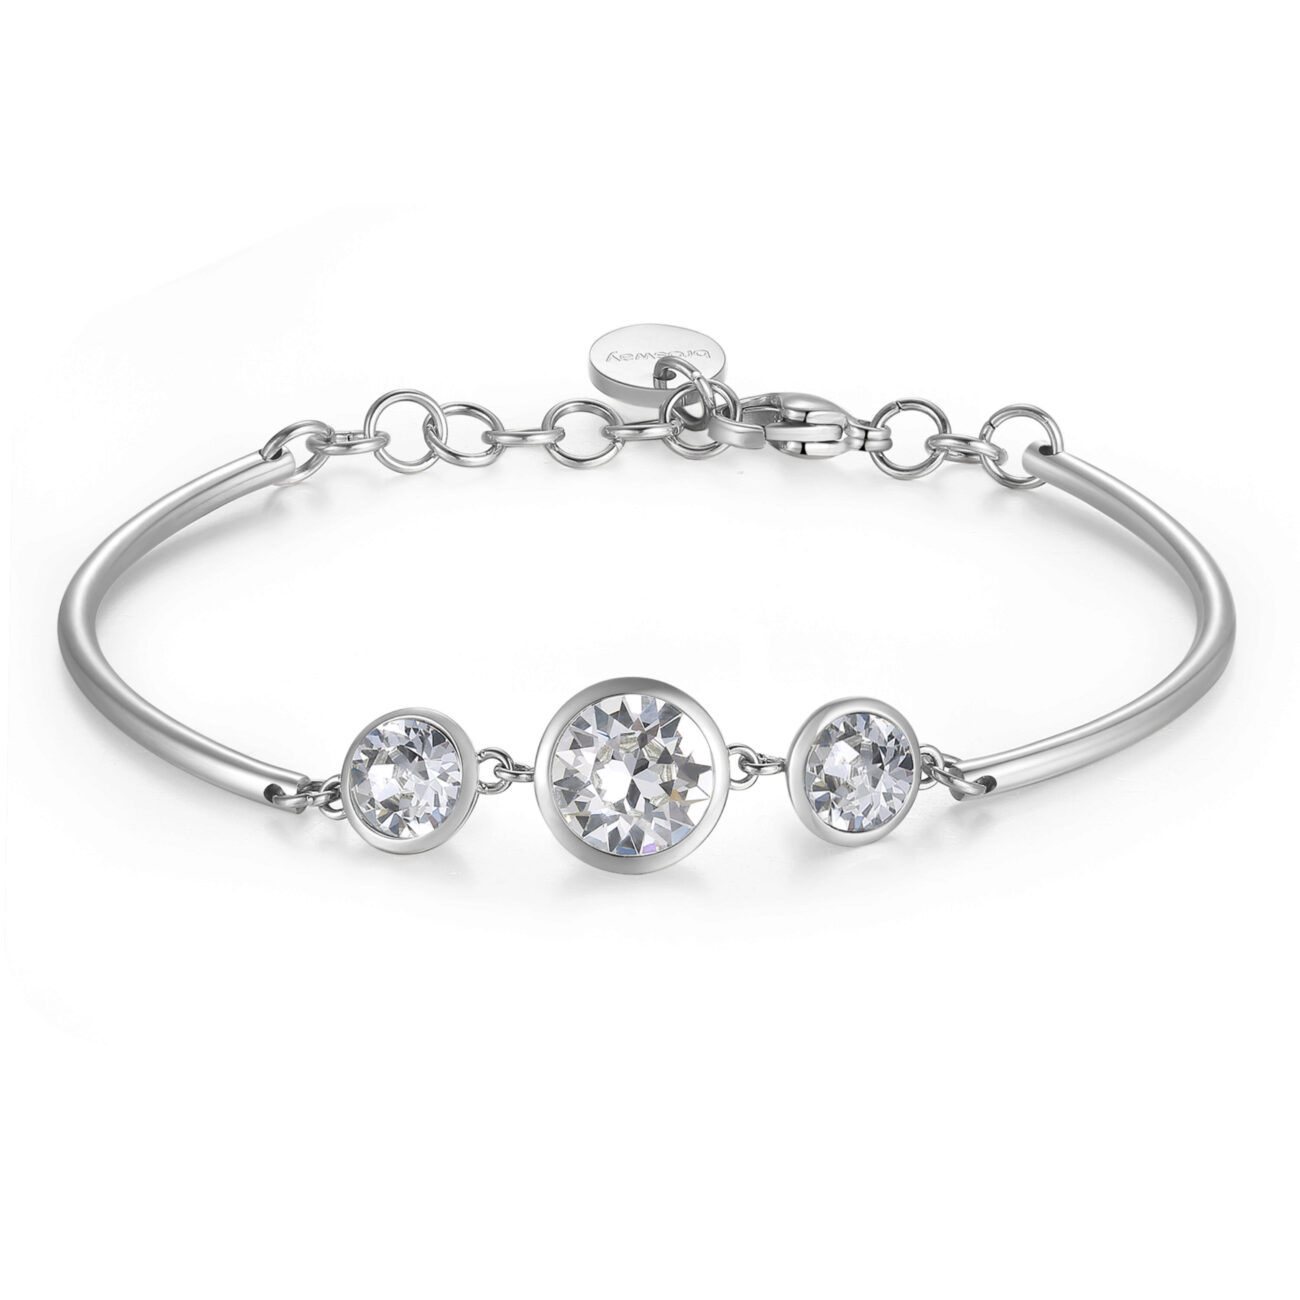 TRINITY CRYSTALS: CHANGE, NOVELTY, TRUSTThose who prefer White constantly crave change and are inspired by novelty in life. They place great trust in others and all that the future holds for them.316L stainless steel and Swarovski® crystals.